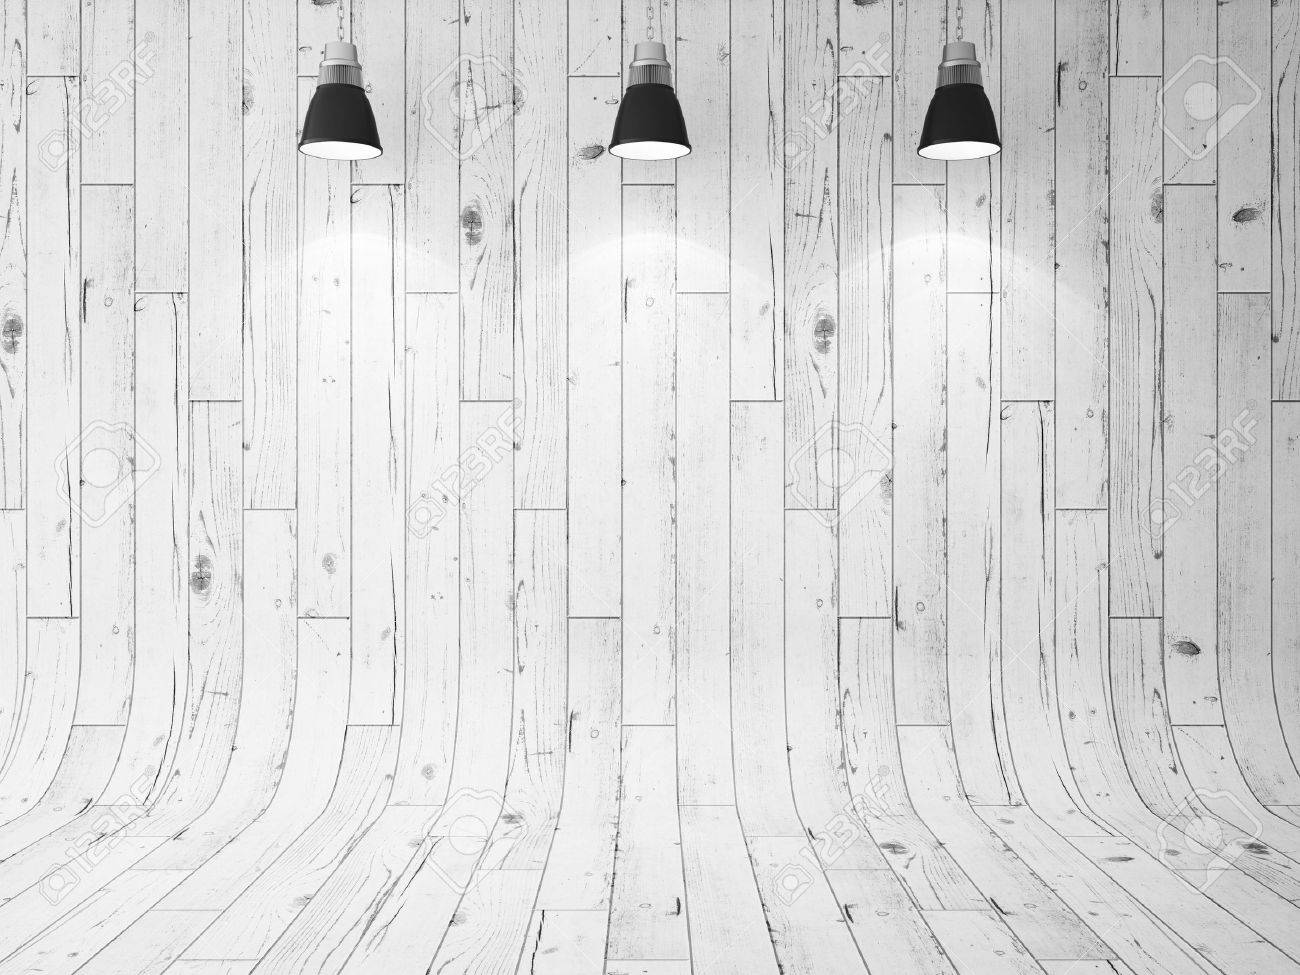 wooden wall and three ceiling lamps. 3d render - 51791212